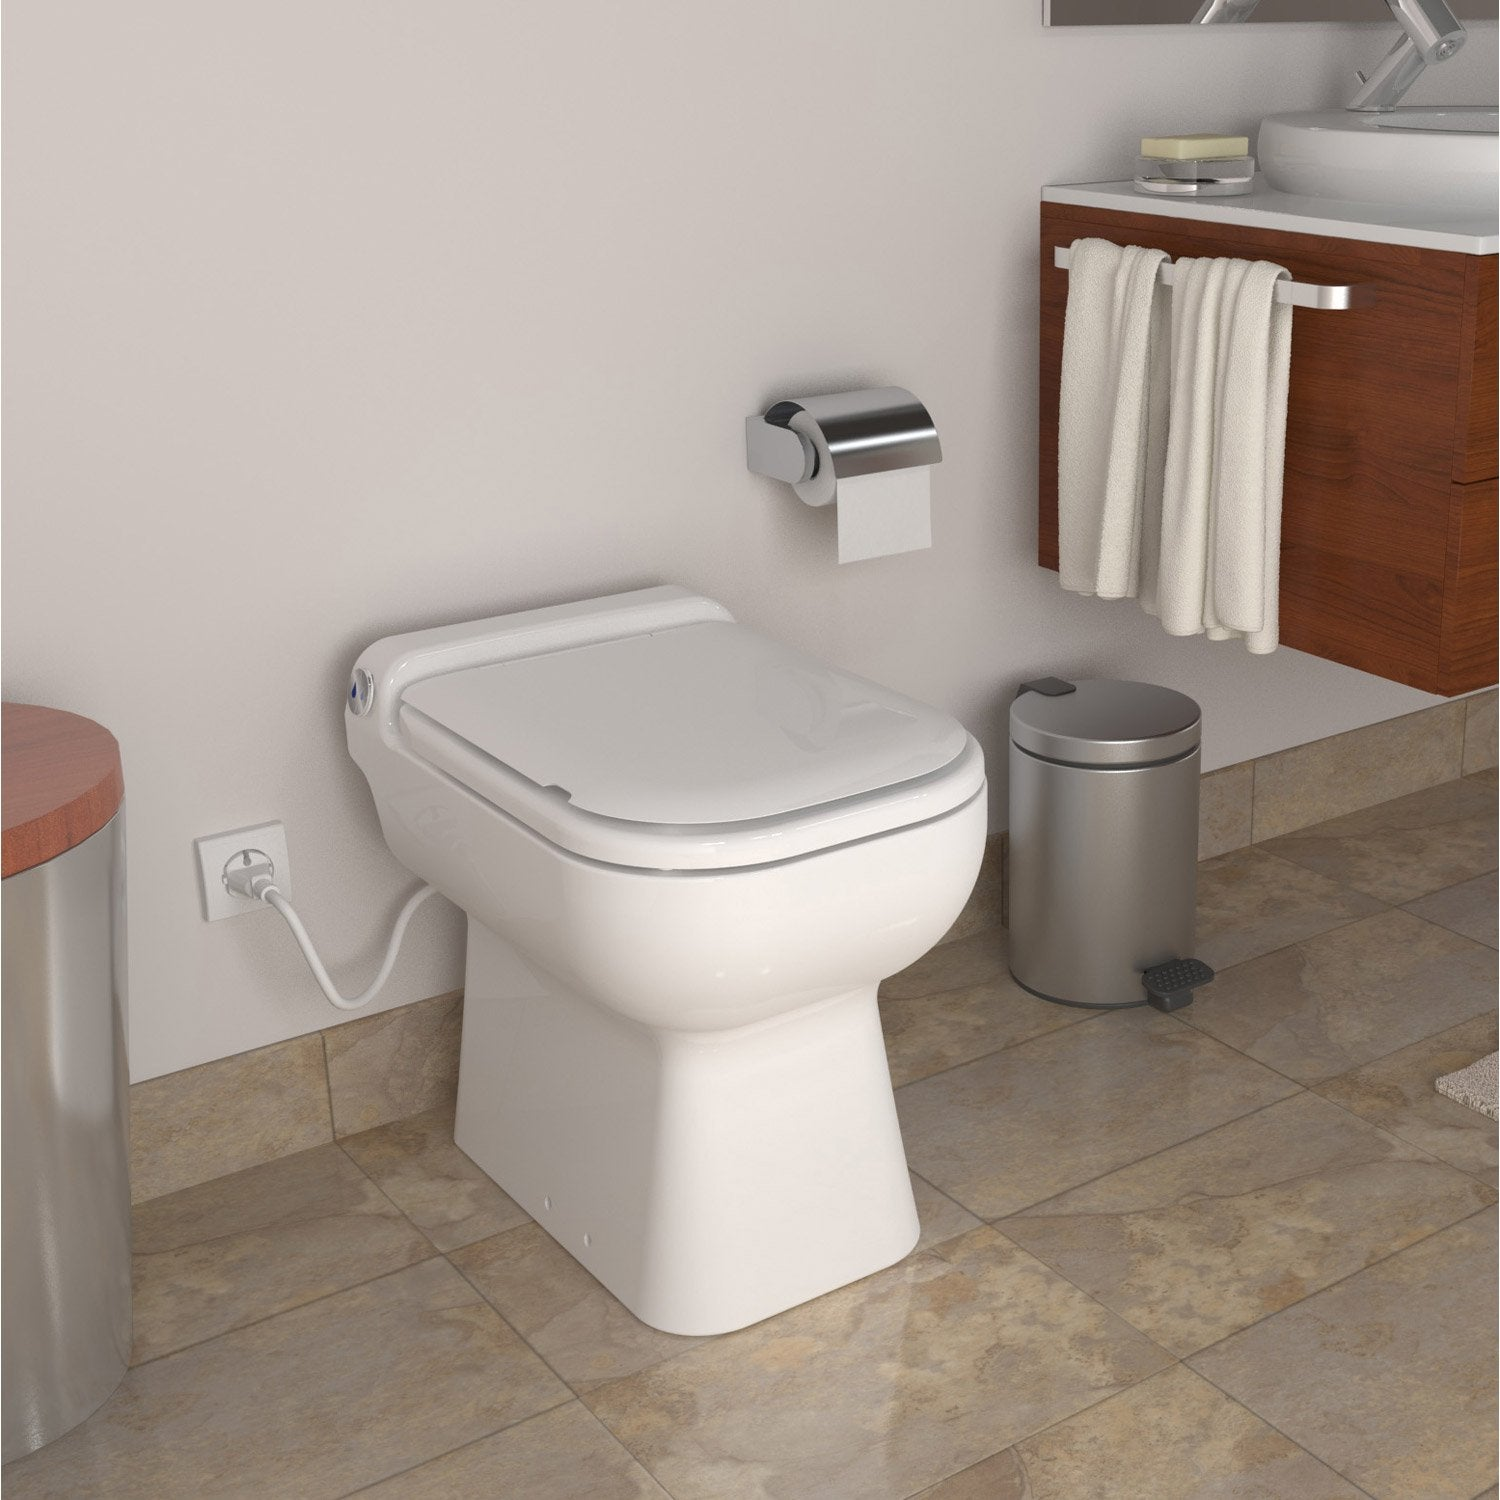 Wc poser avec broyeur int gr turbo design leroy merlin for Petit toilette leroy merlin